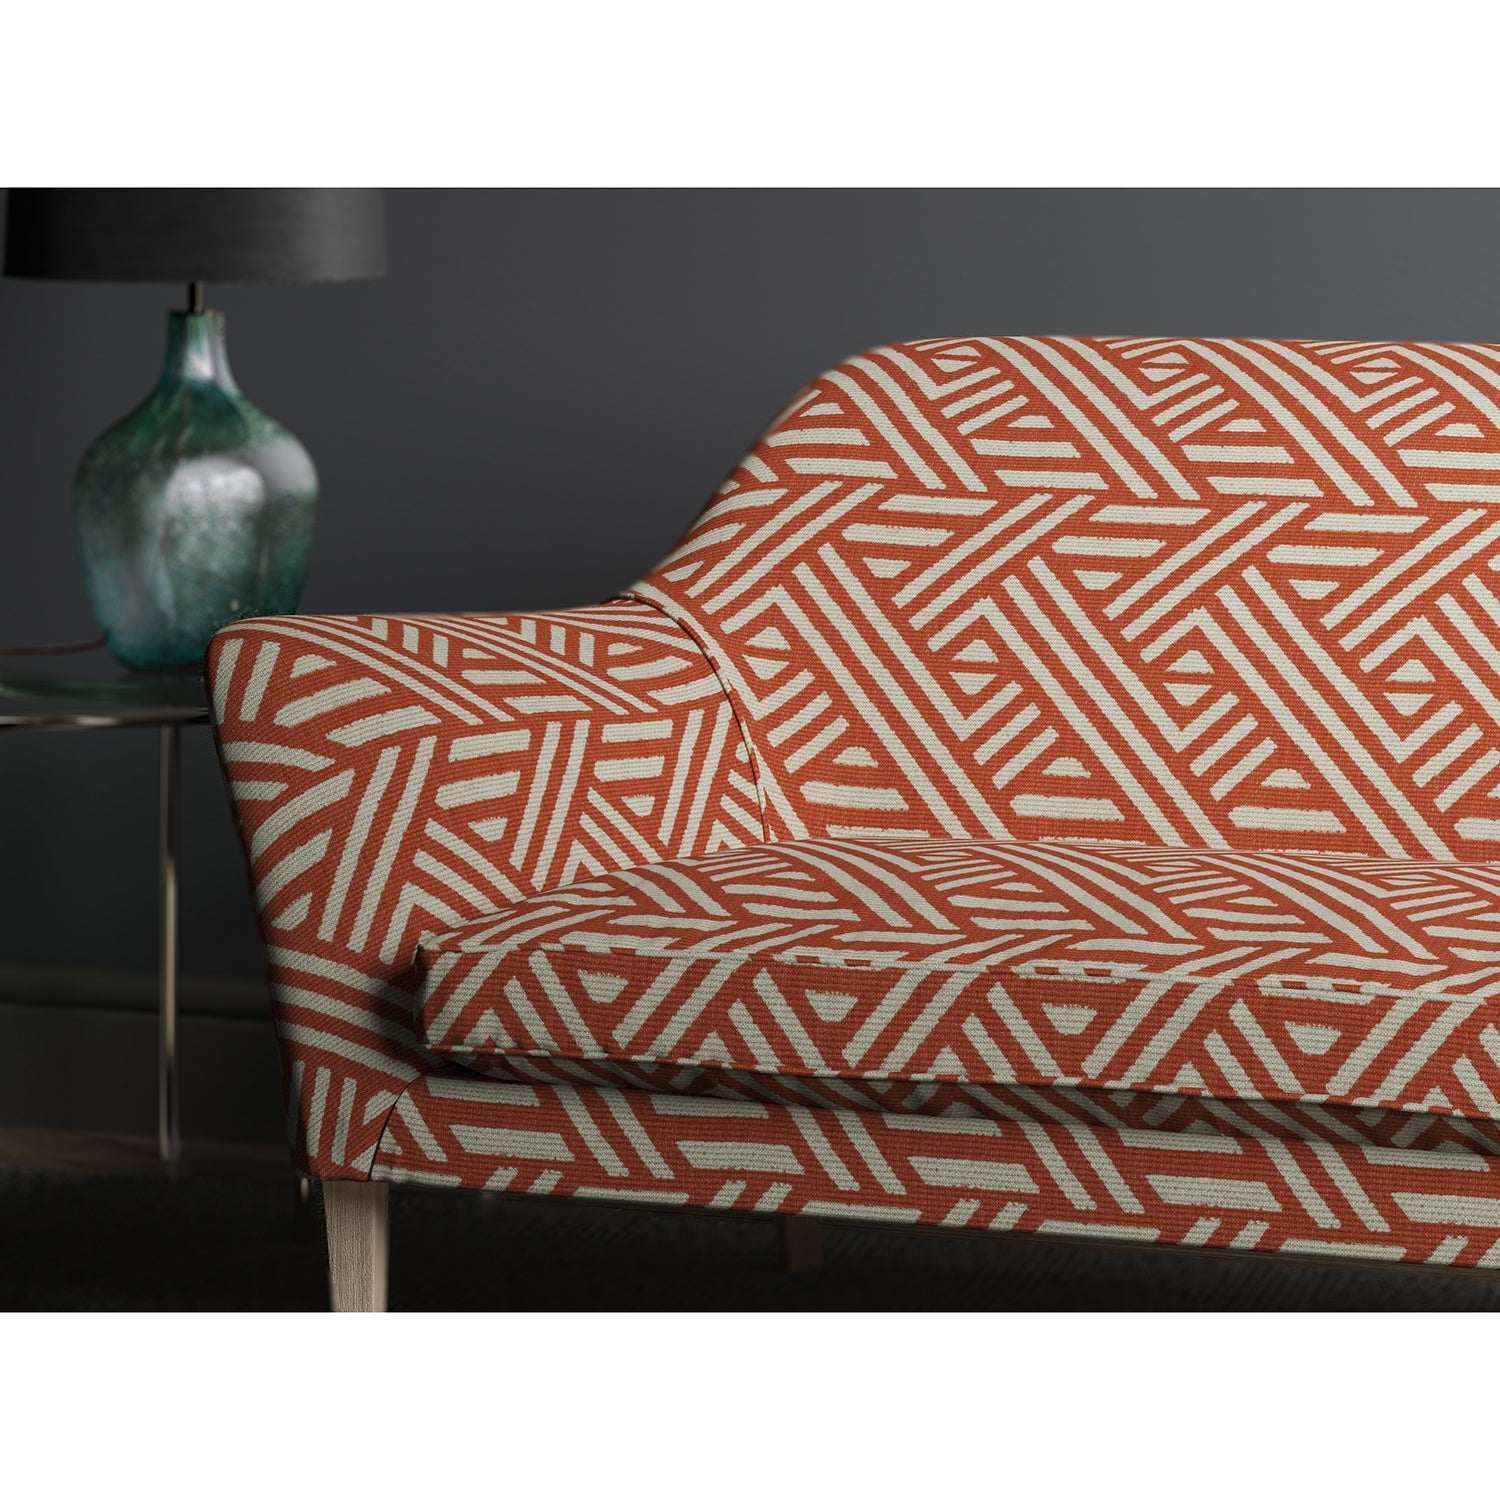 Sofa upholstered in design name Pampas, colourway Chilli from the Tango collection